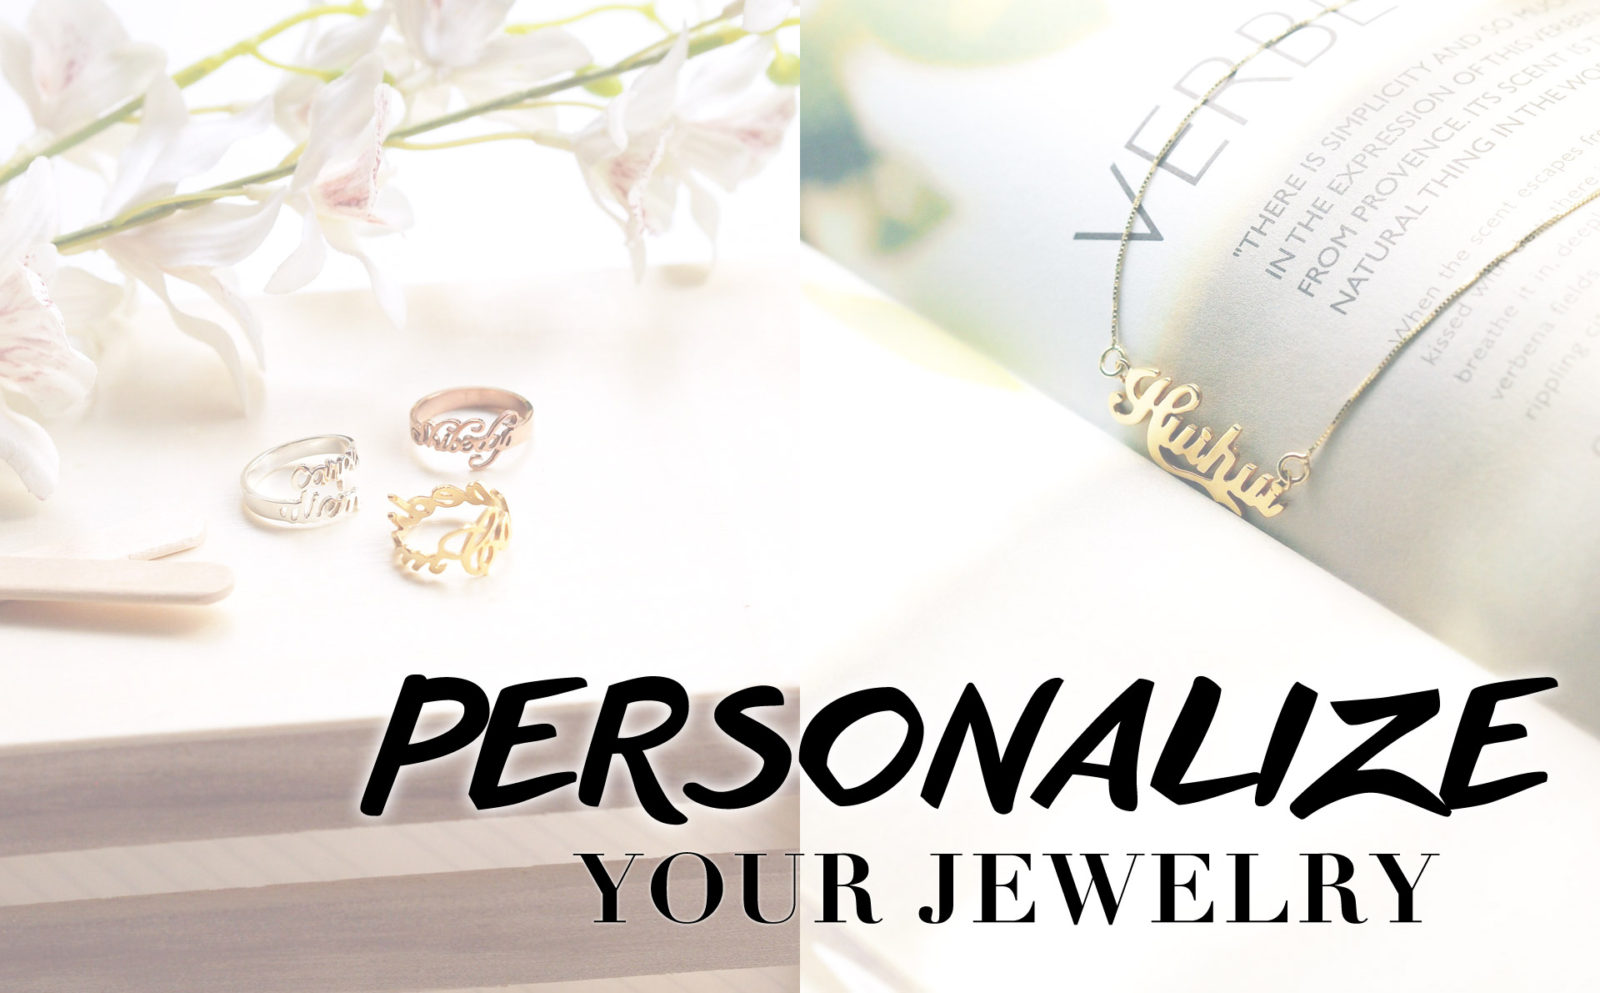 Personalize necklaces, bracelets, cuffs, rings